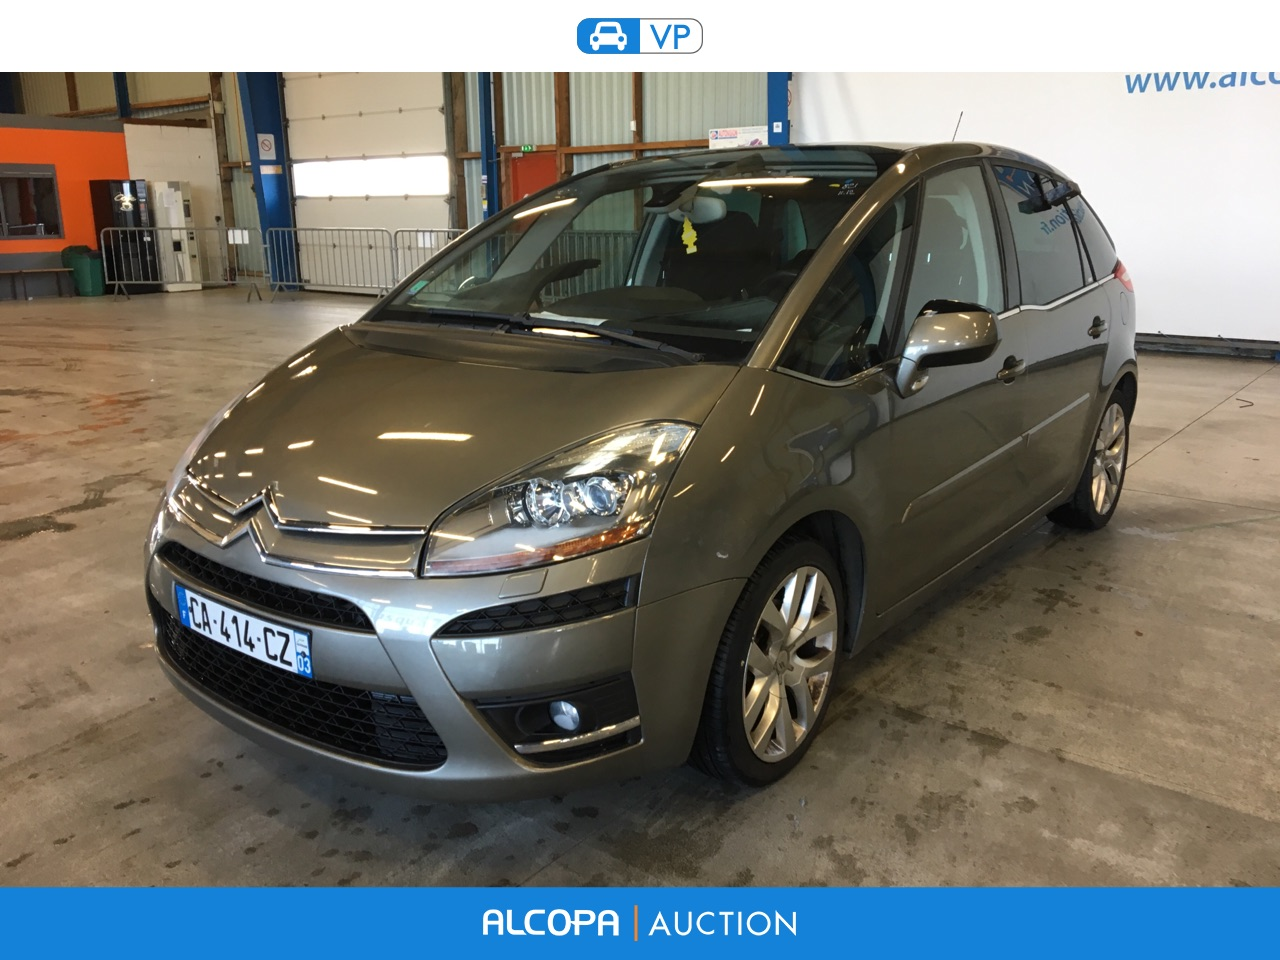 citroen c4 c4 picasso 2 0 hdi138 fap exclusive bmp6 rennes alcopa auction. Black Bedroom Furniture Sets. Home Design Ideas